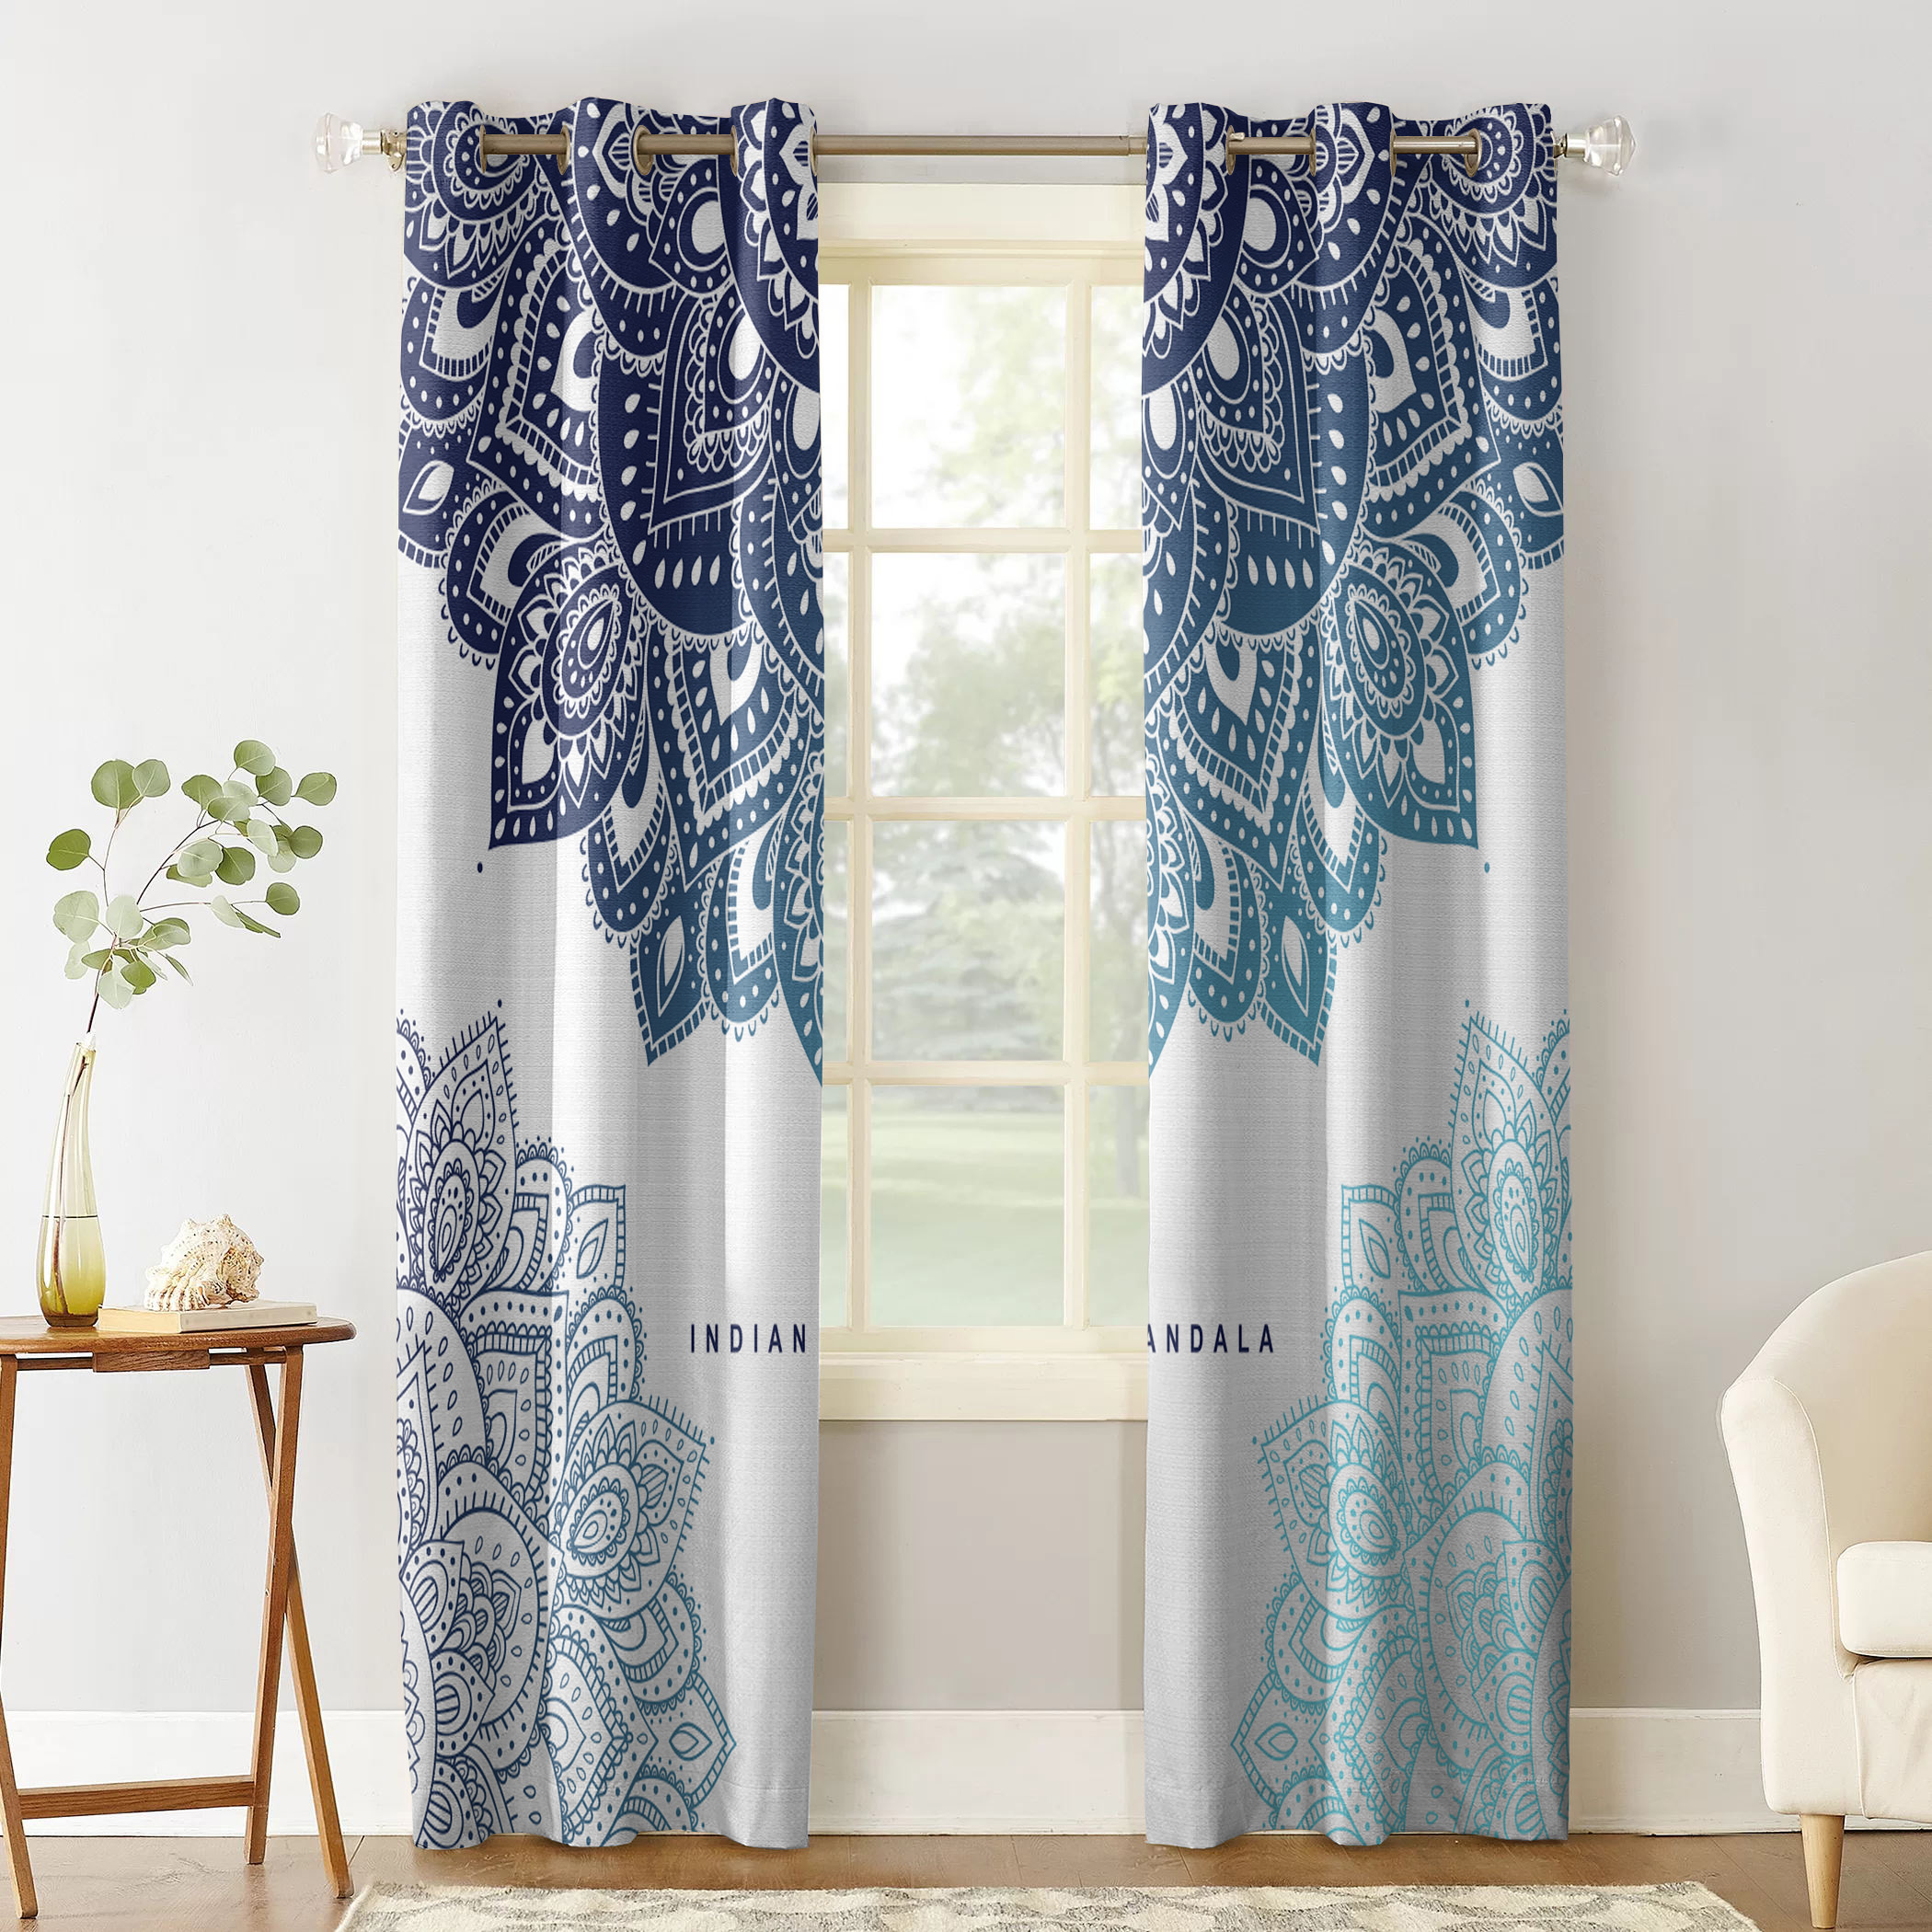 Mega Discount 5080 Indian Mandala Abstract Curtains For Living Room Children Bedroom Decoration Home And Kitchen Products Windows Drapes Cicig Co